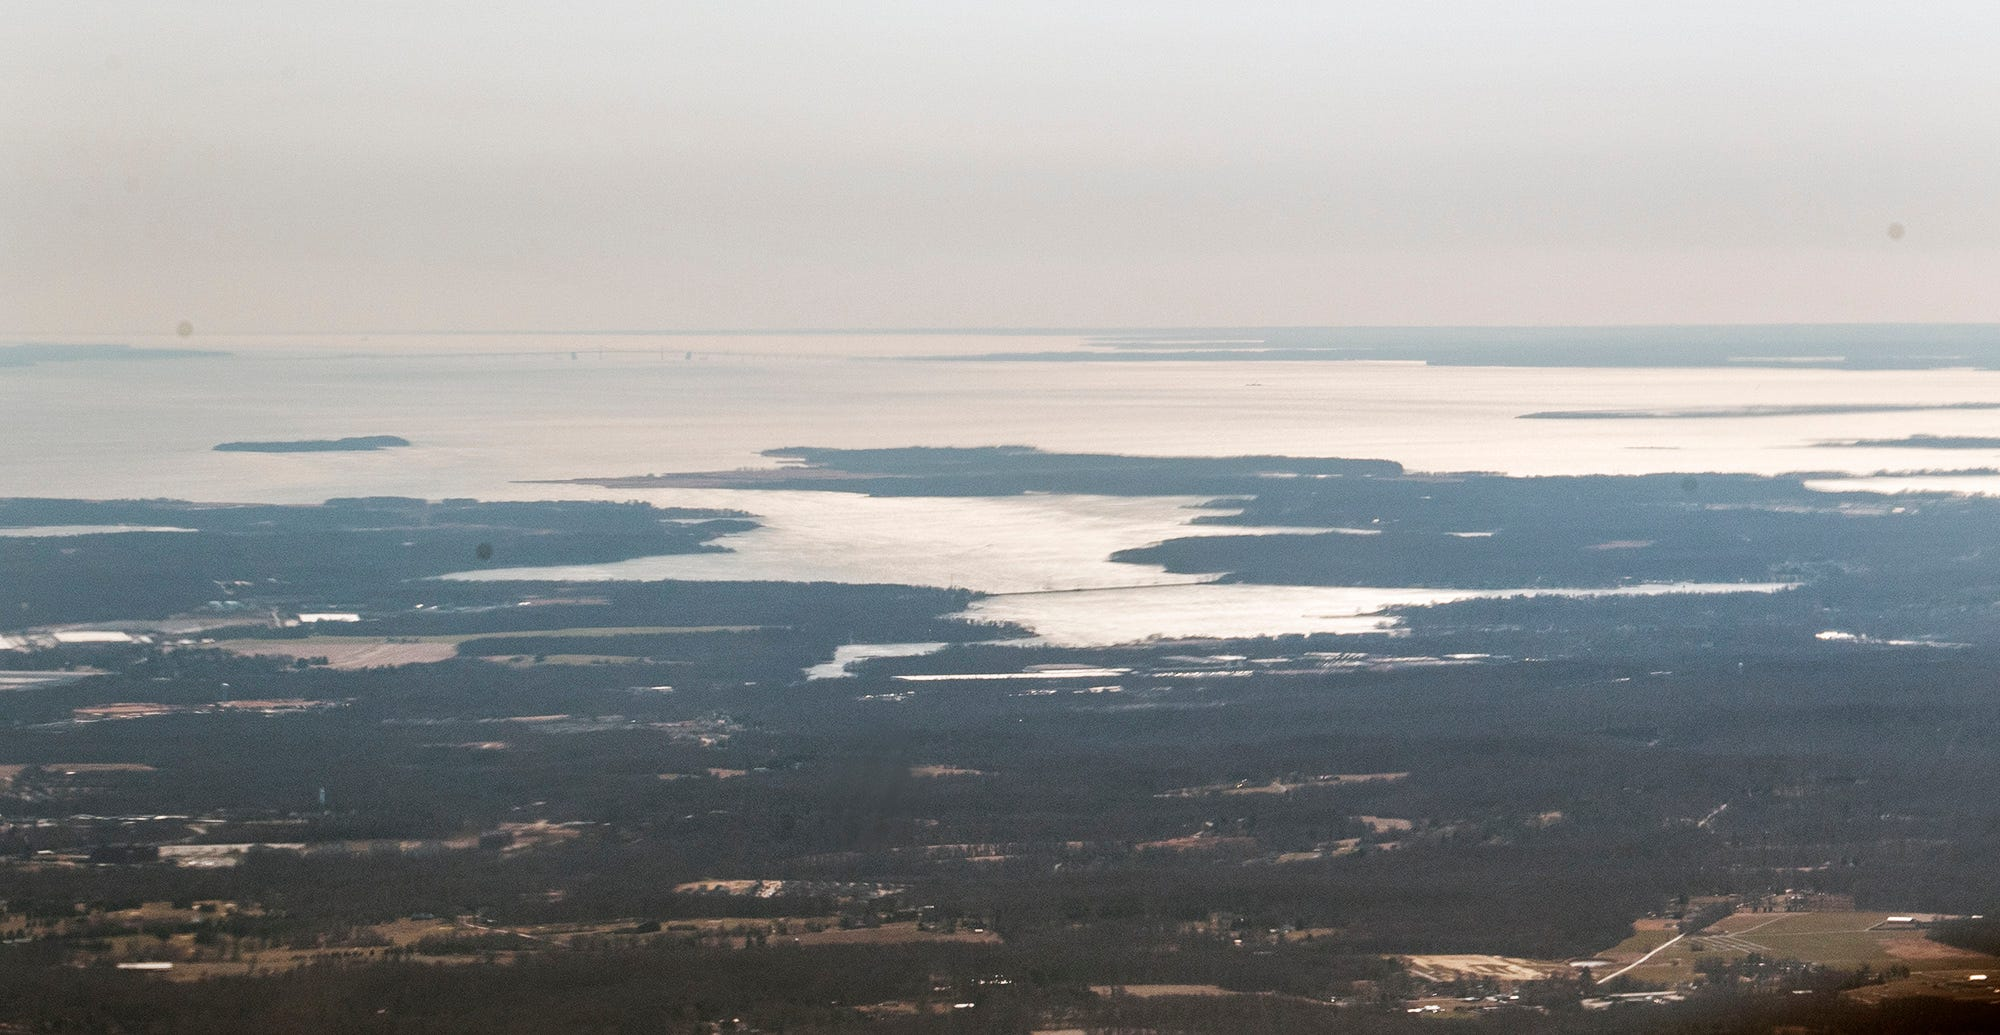 Looking at the Chesapeake Bay from about 4,000 feet over York County, Pa.